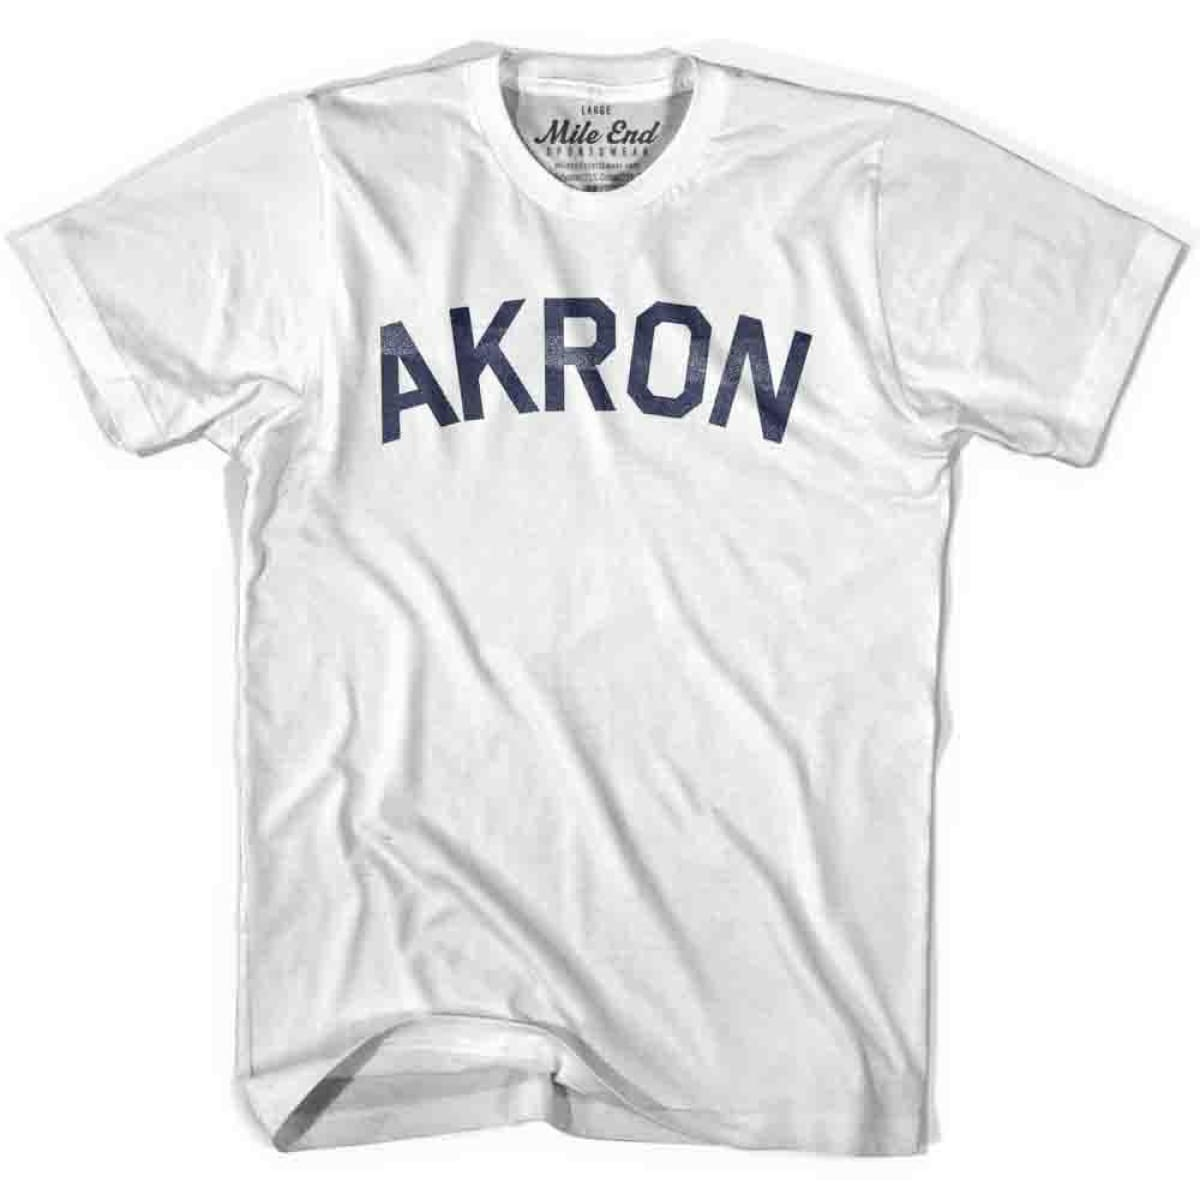 Akron City Vintage T-shirt - White / Youth X-Small - Mile End City